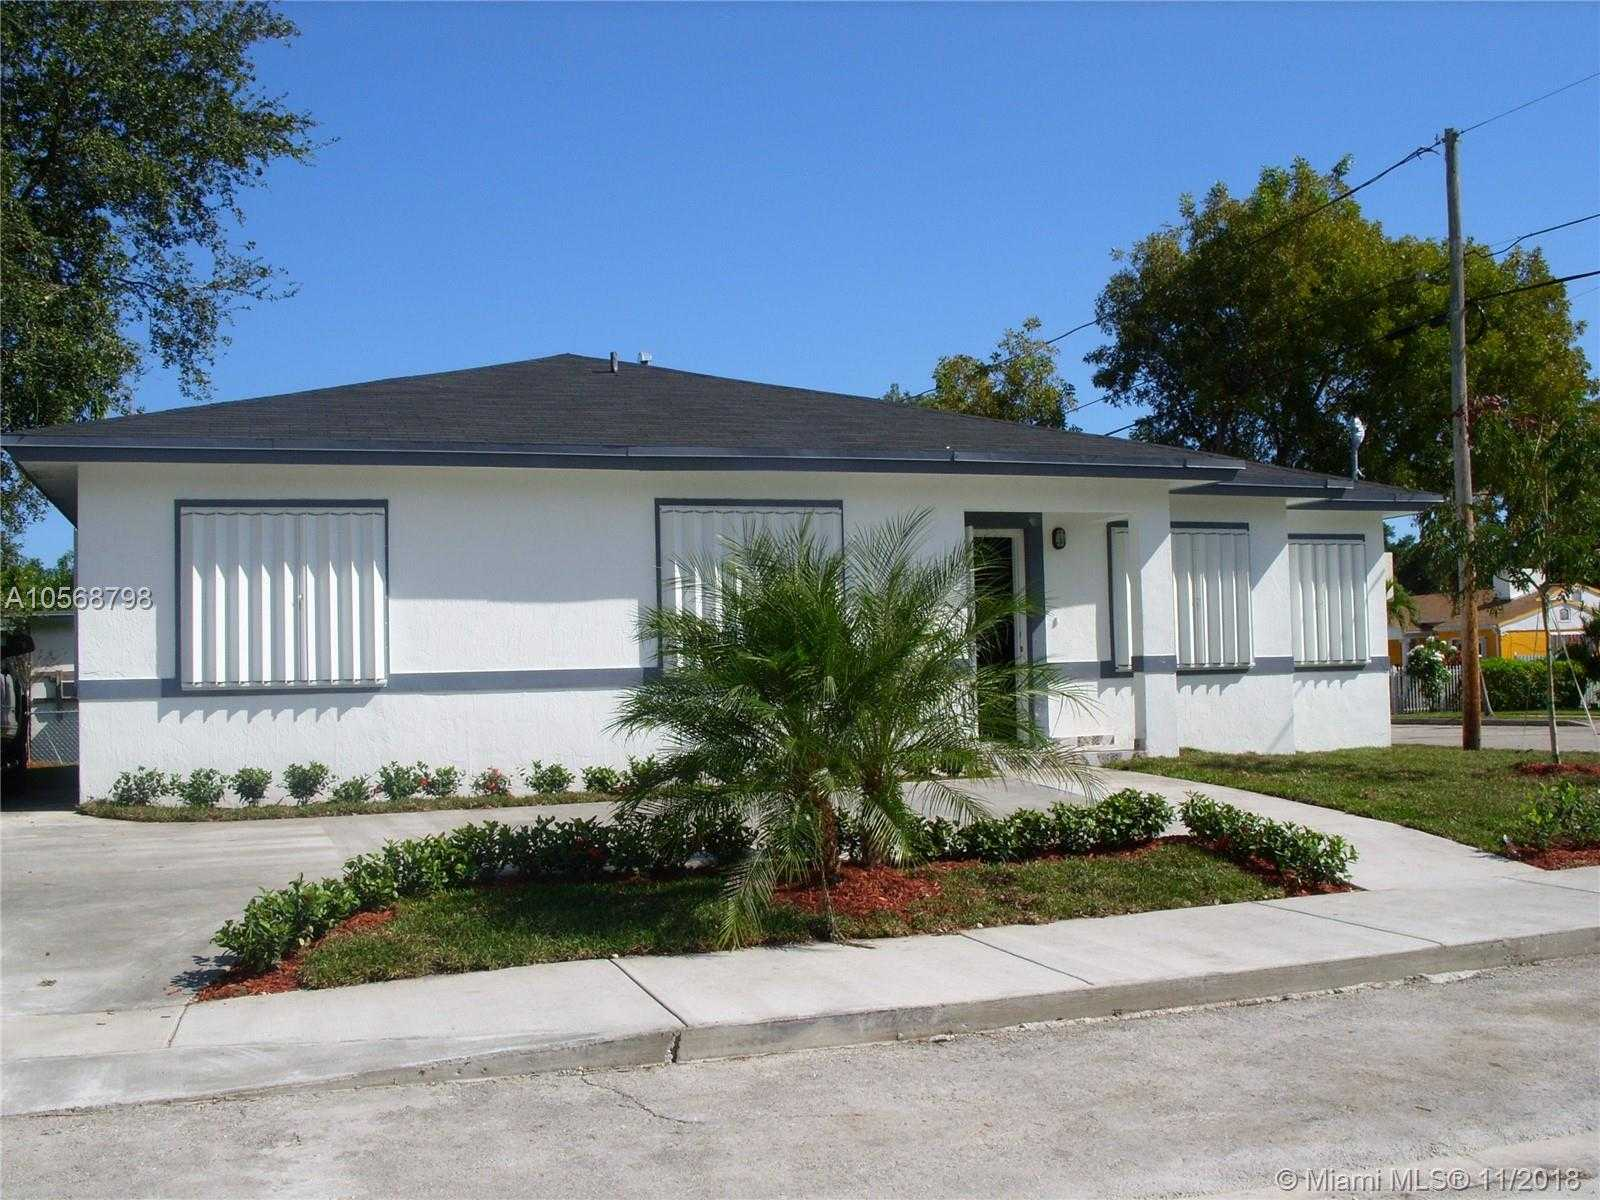 $310,000 - 4Br/2Ba -  for Sale in Bowling Green, Miami